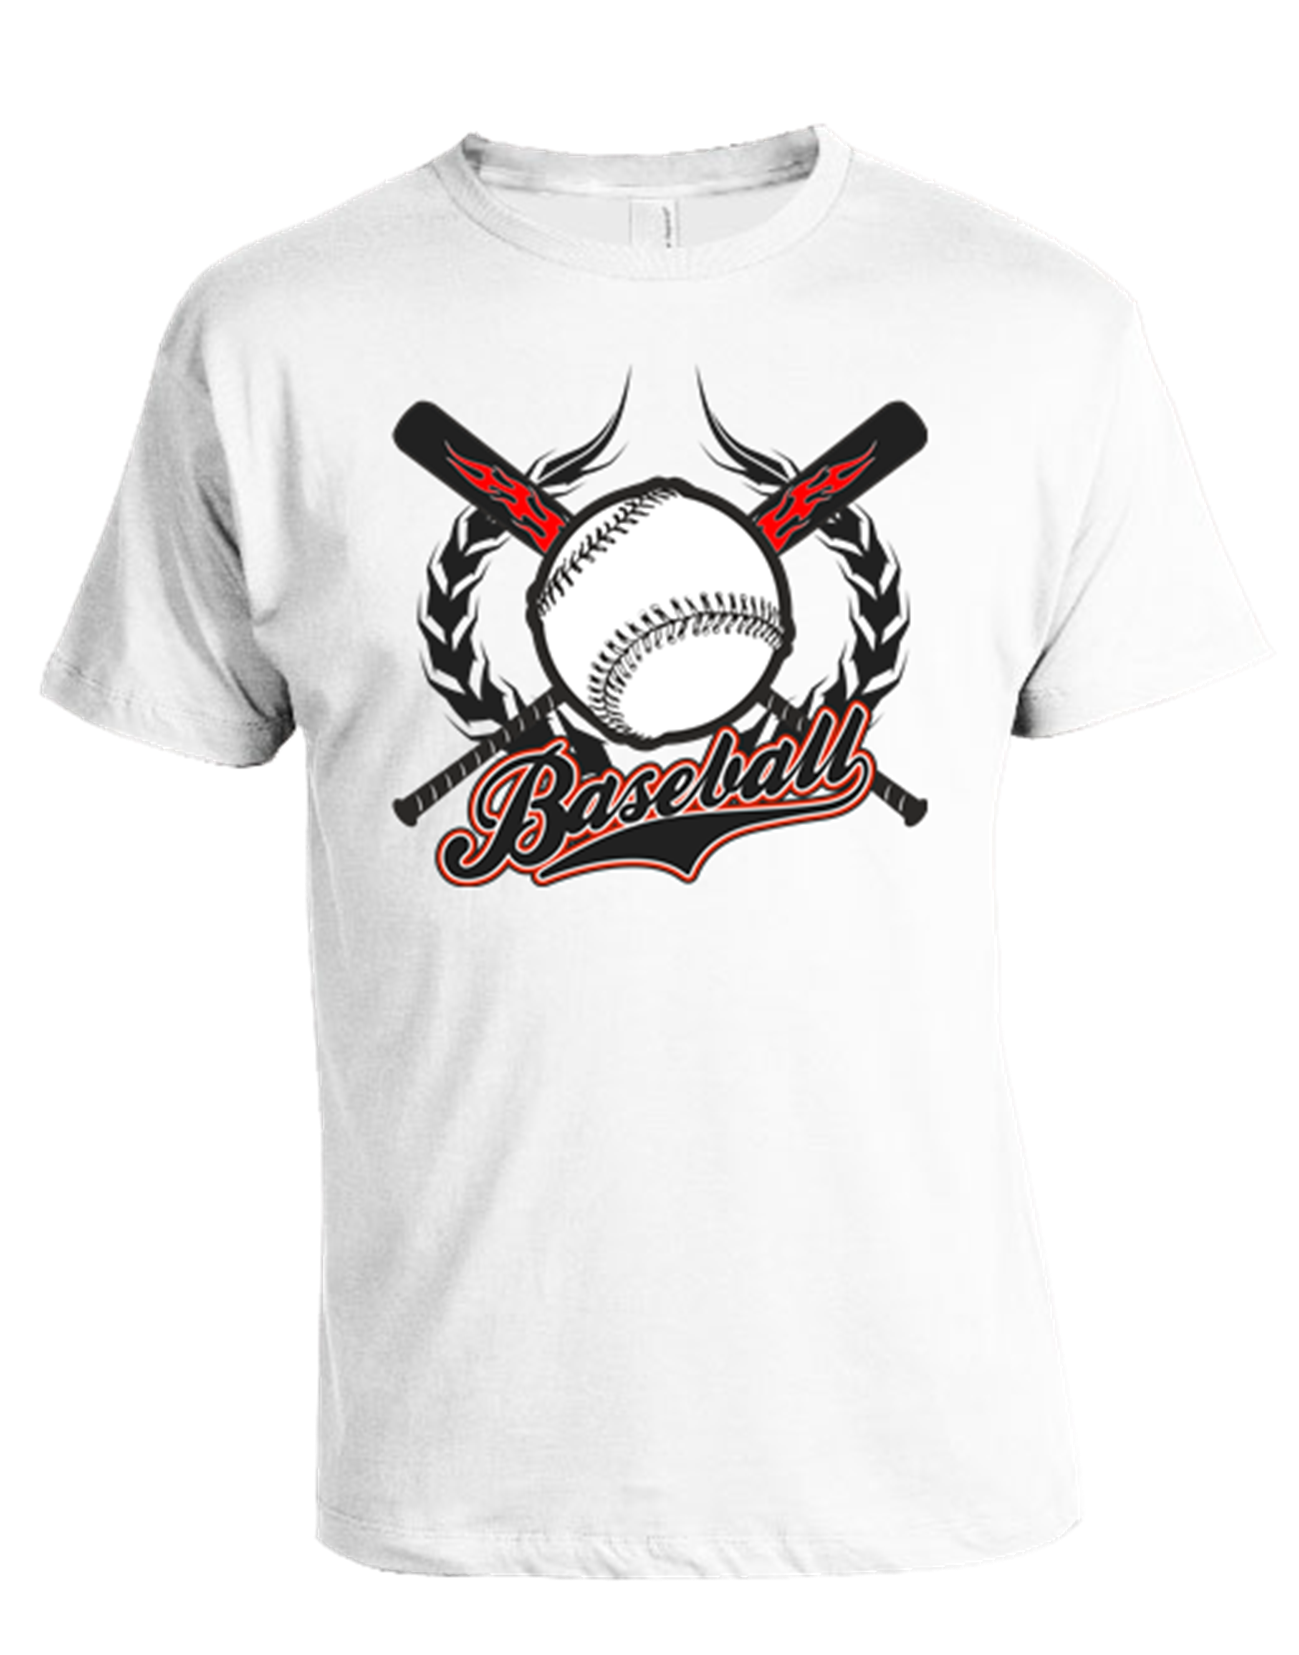 baseball design t shirt - Baseball T Shirt Designs Ideas